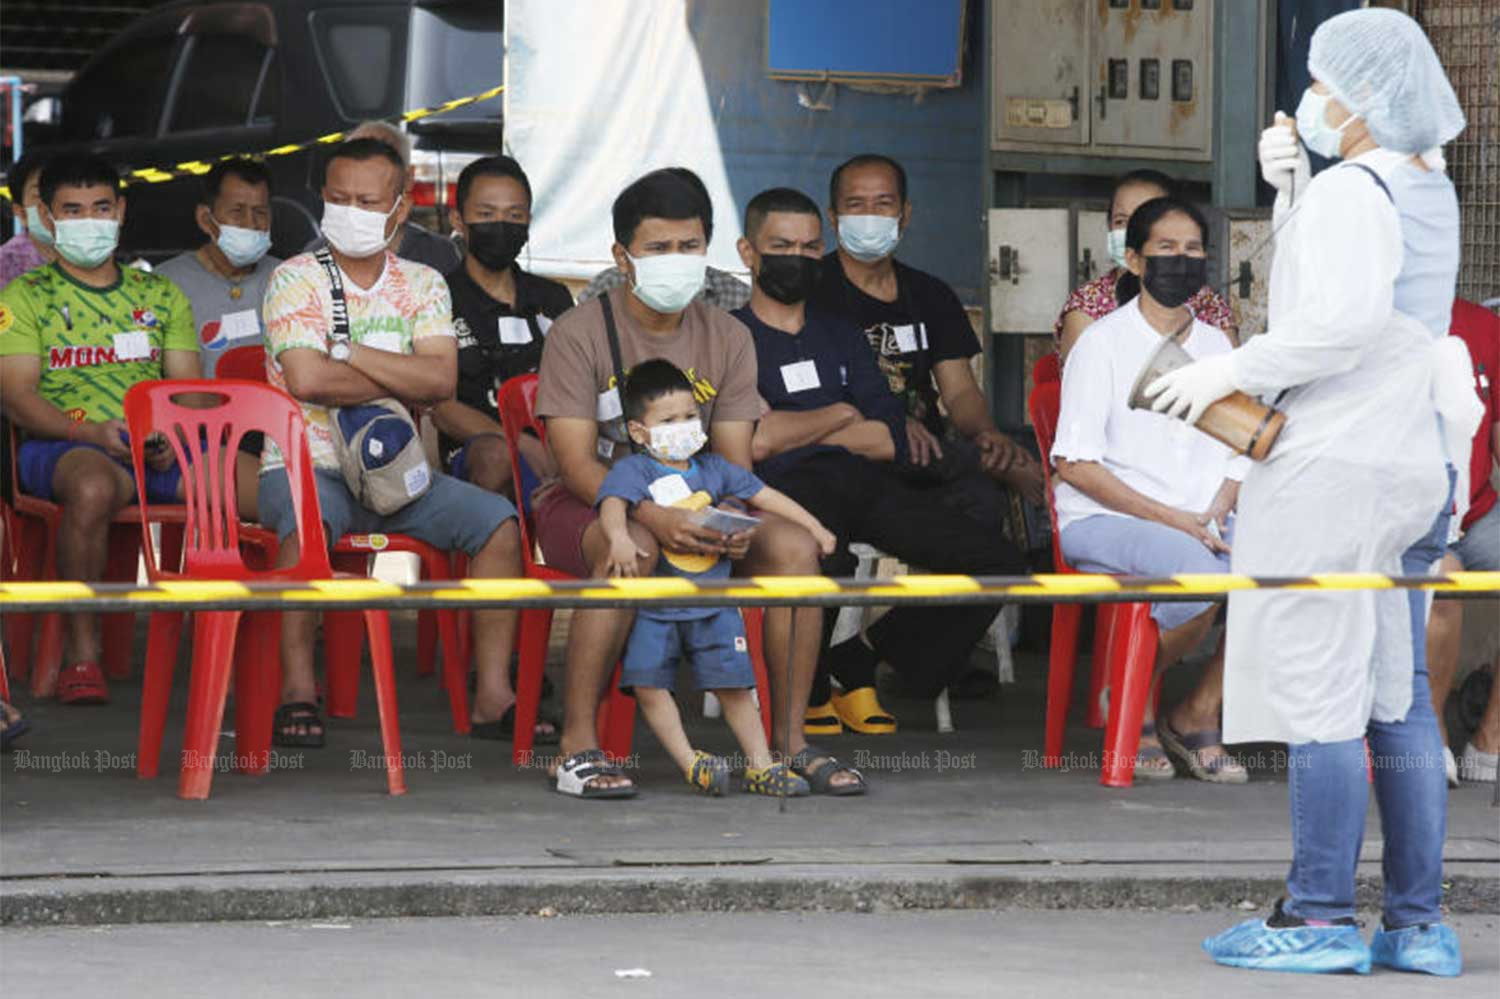 People wait to be tested for Covid-19 tests at Pornpat market in Thanyaburi district, Pathum Thani province, on Saturday. The wet market and Suchart market, both in tambon Prachathipat at the centre of a Covid cluster, remain close until Thursday. (Photo by Apichit Jinakul)